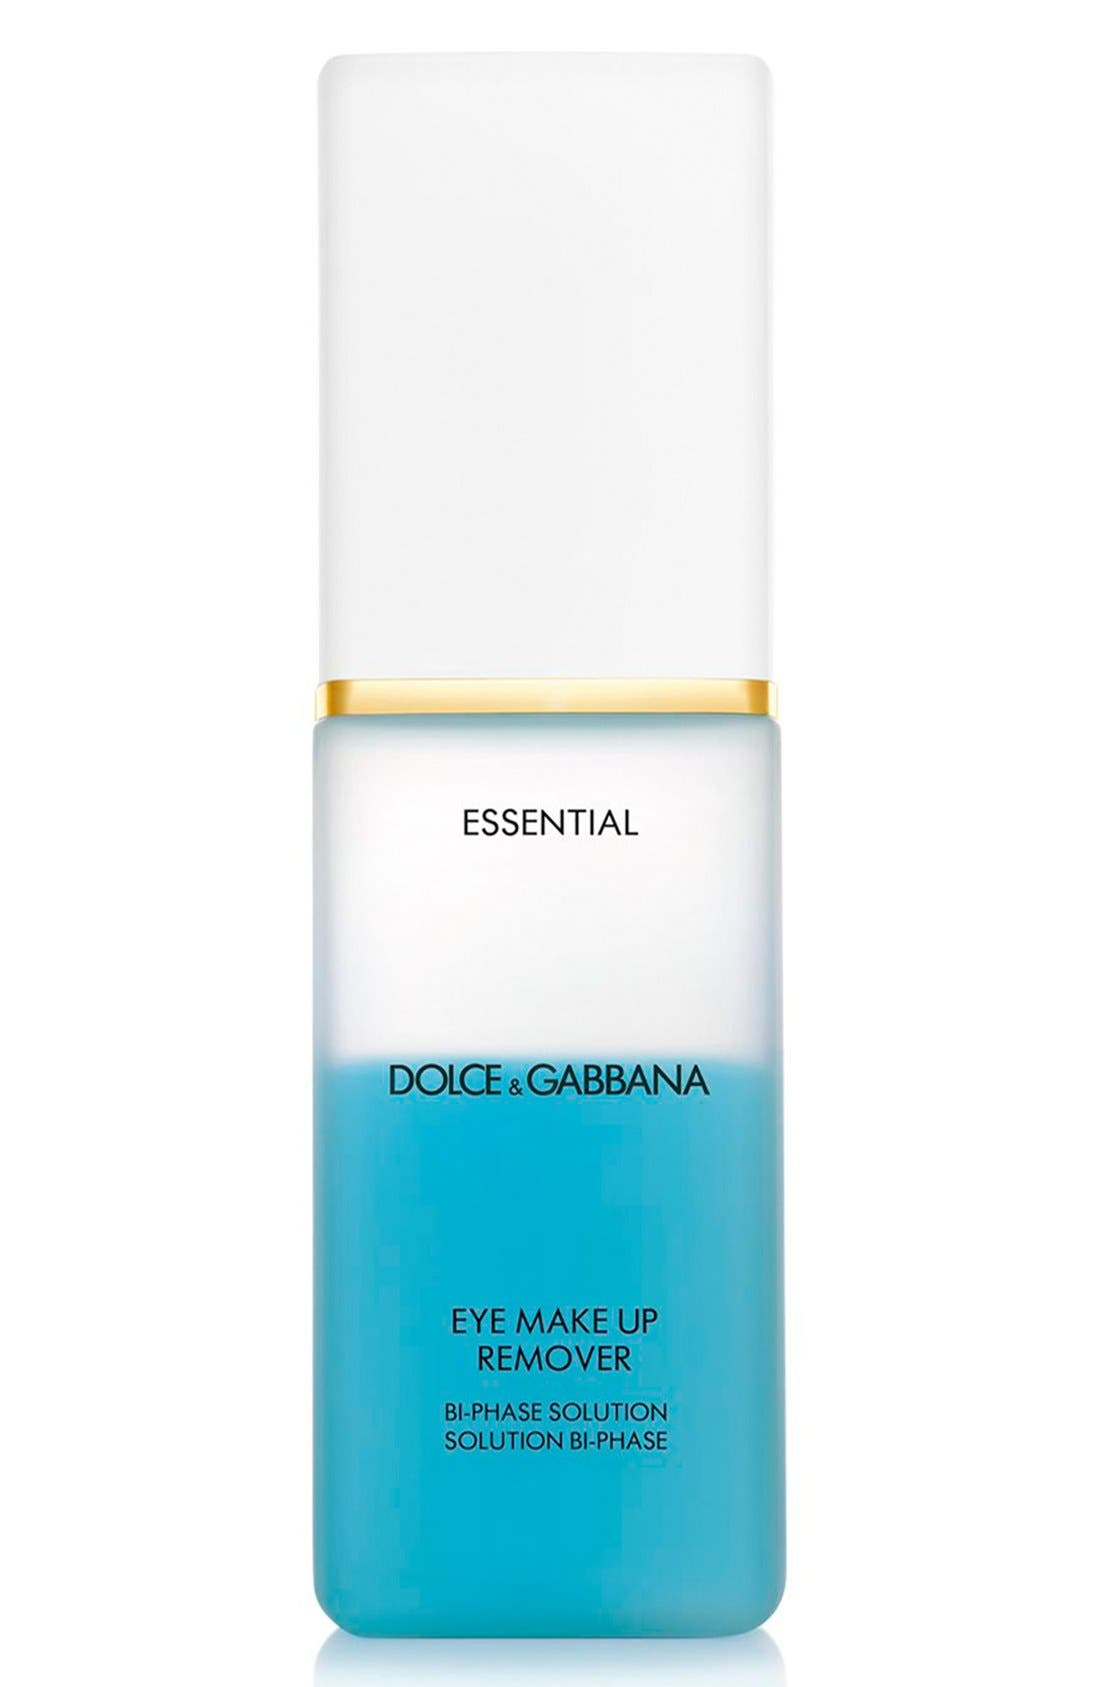 Dolce&GabbanaBeauty 'Essential' Eye Makeup Remover